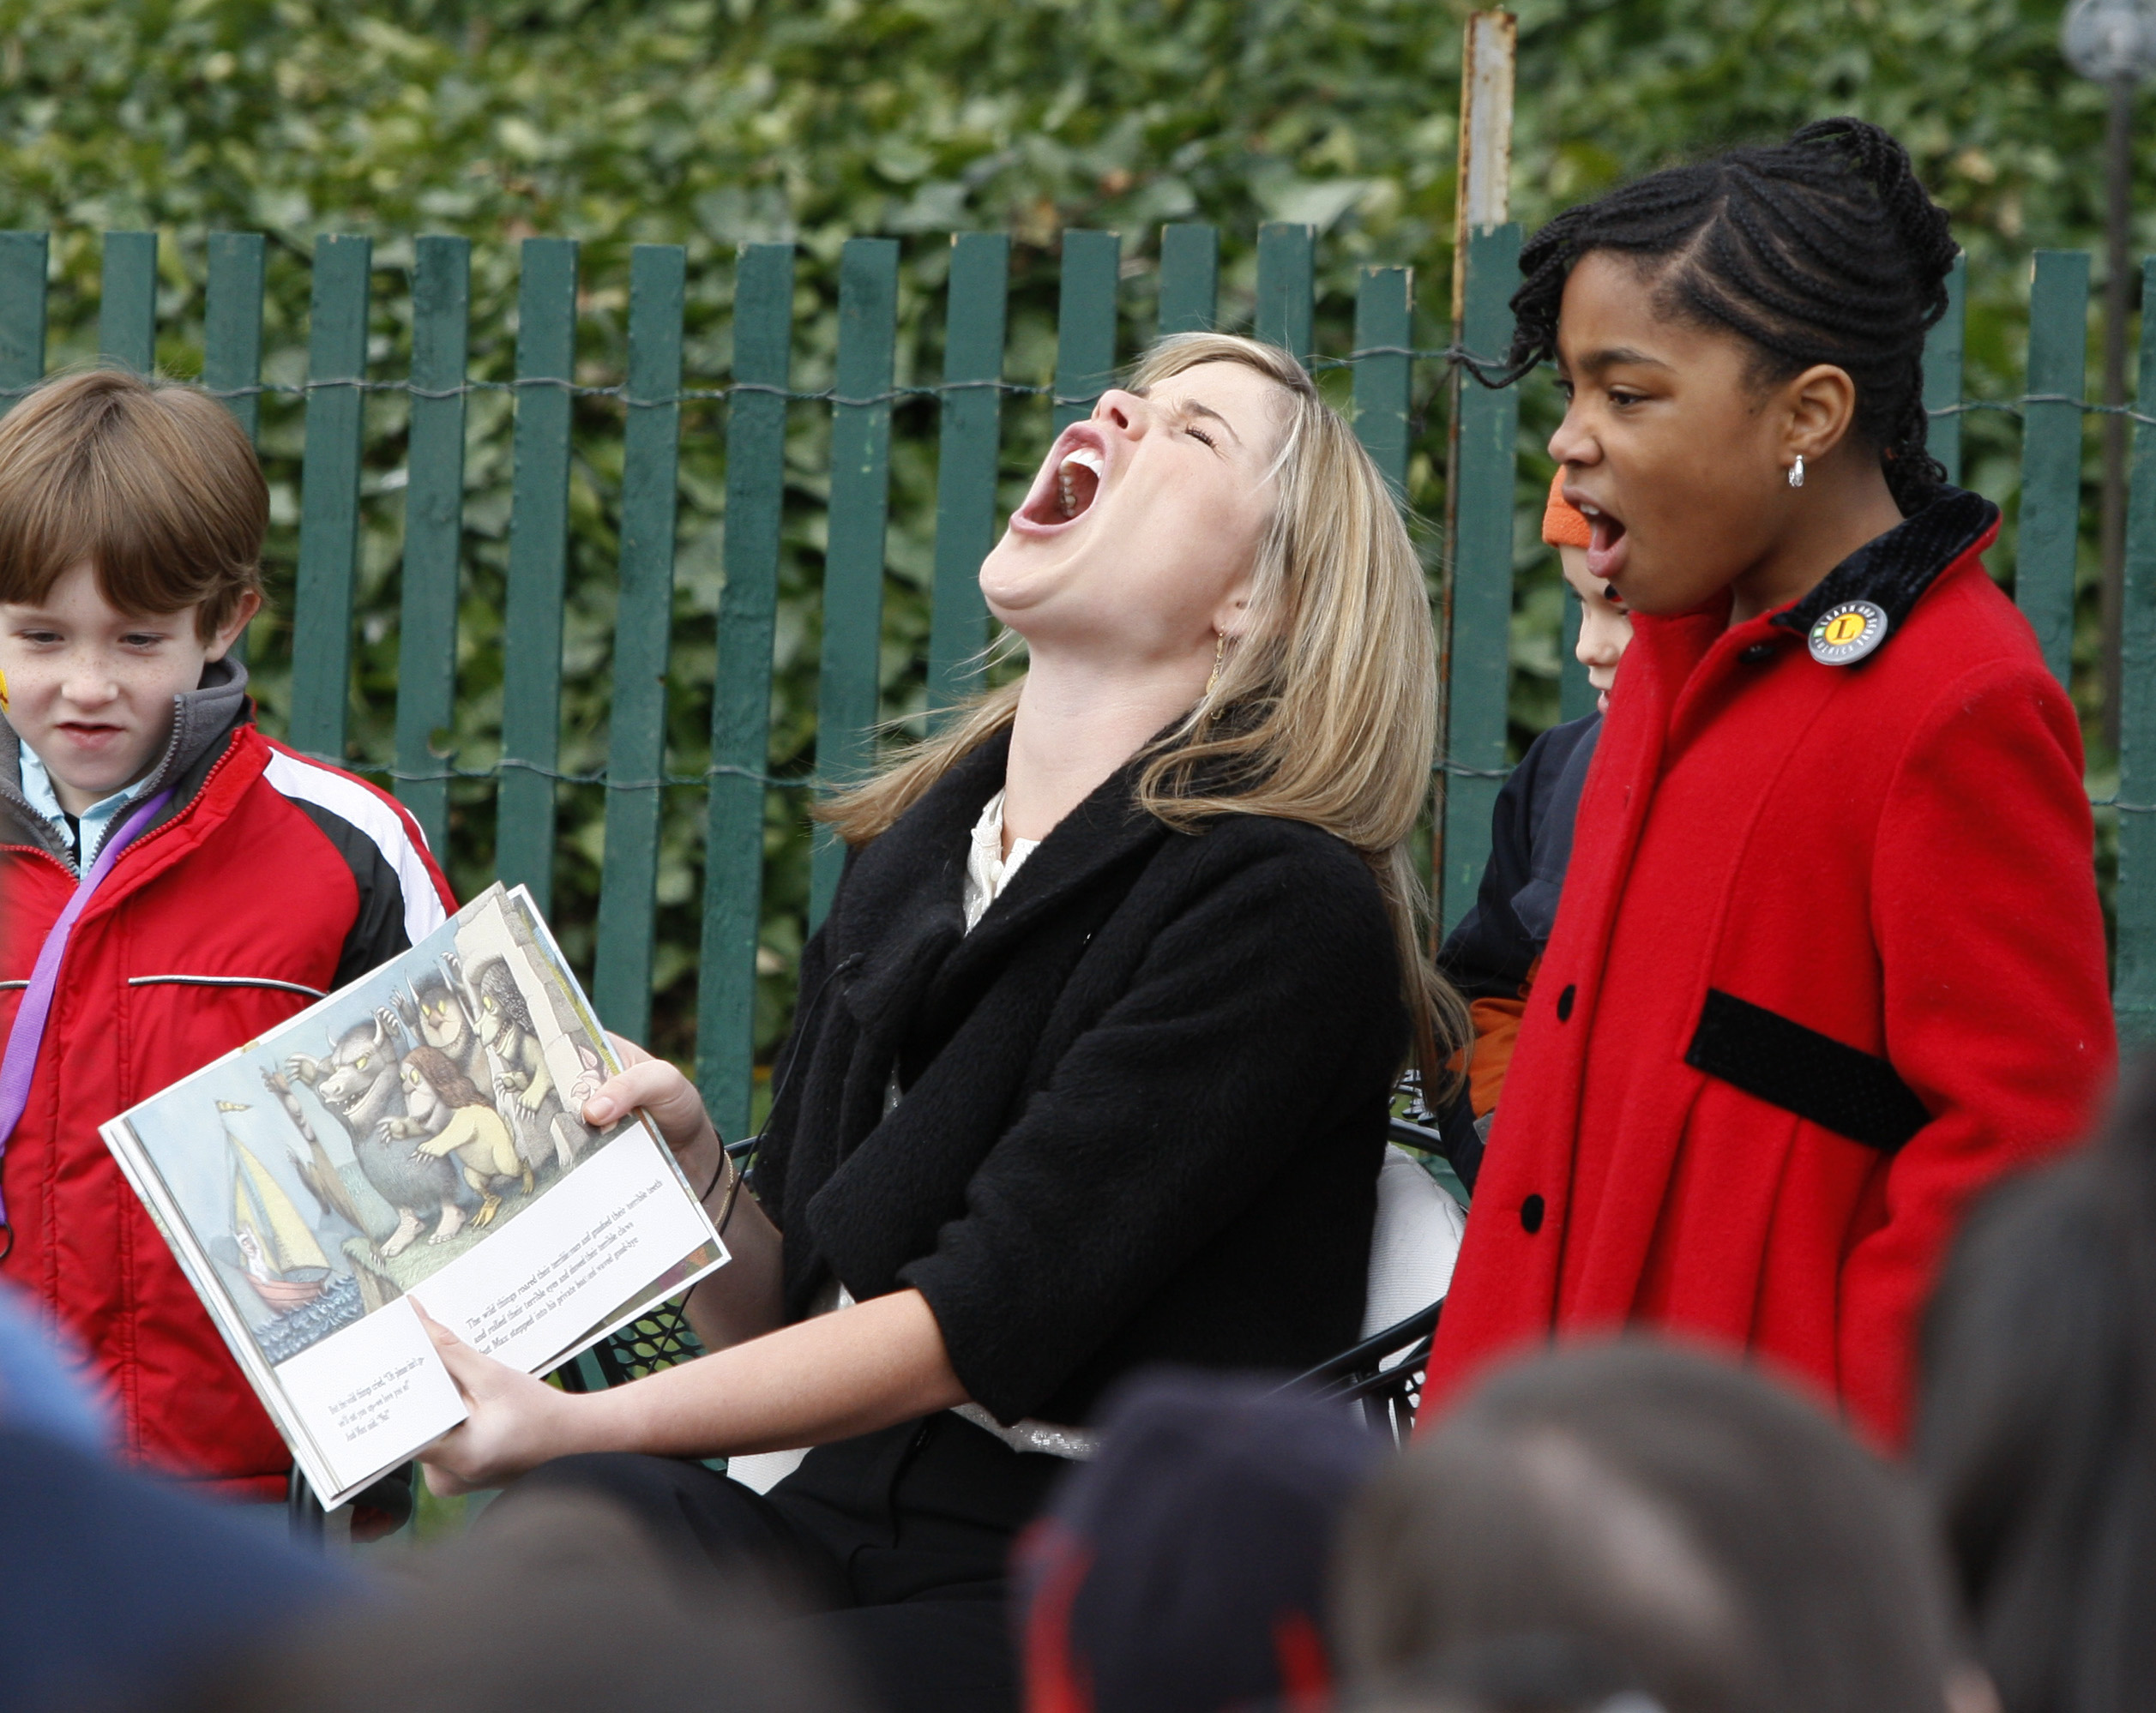 "Jenna Bush, the daughter of U.S. President George W. Bush, enacts one of the monster characters of the book ""Where the Wild Things Are"" during her book reading for children at the annual Easter Egg Roll on the South Lawn of the White House in Washington, March 24, 2008. The traditional White House event dates back to 1878. REUTERS/Jason Reed"